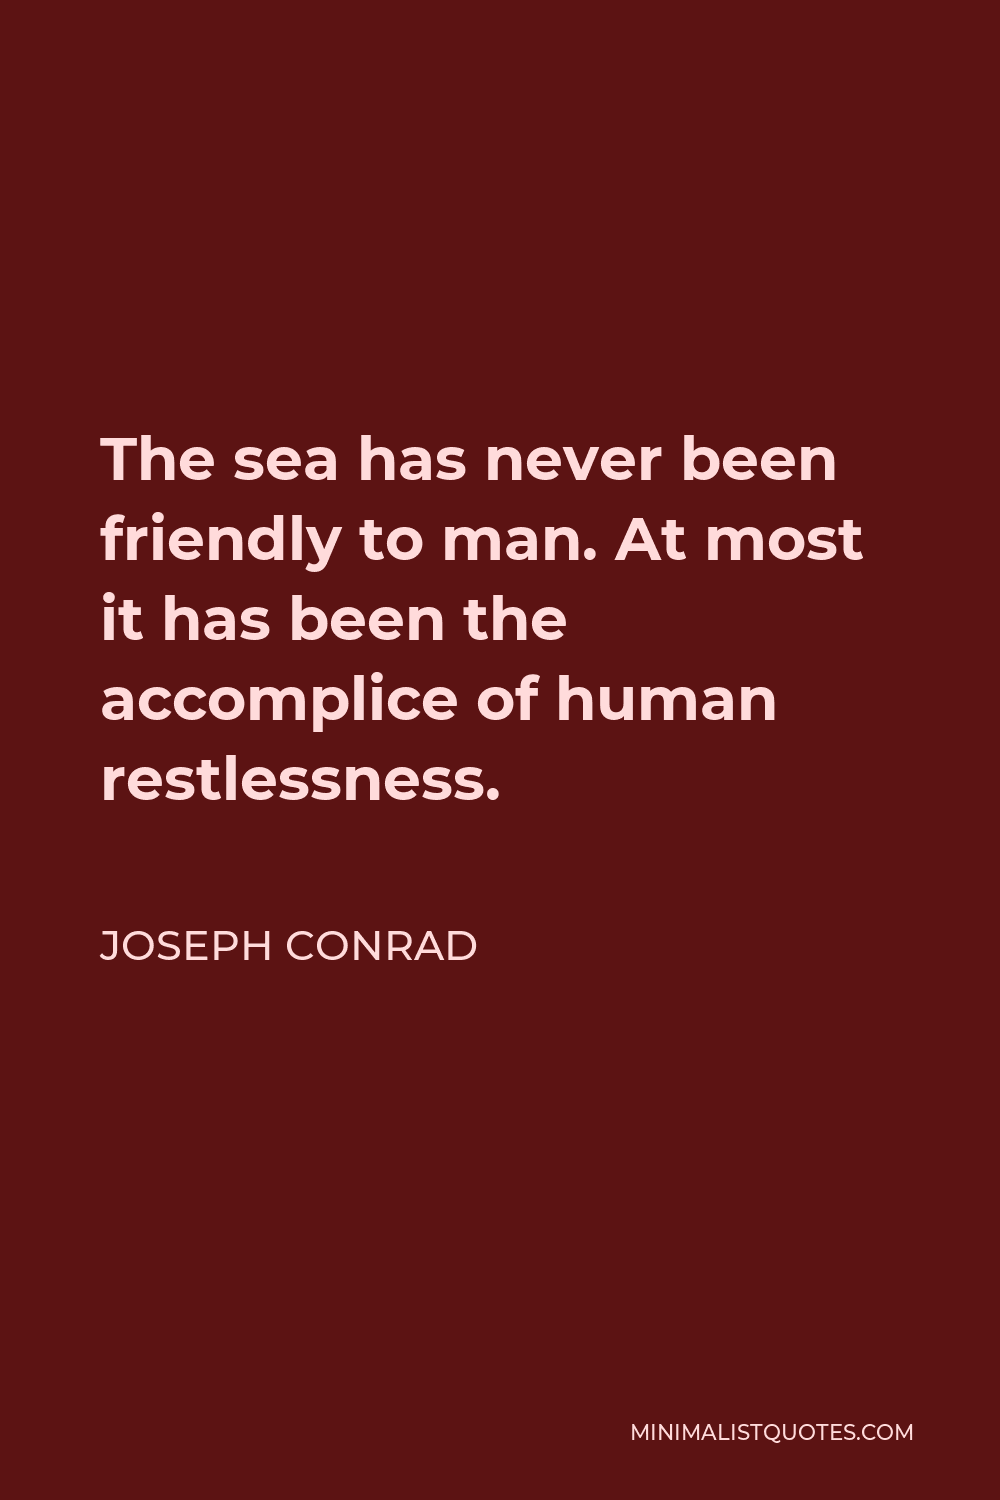 Joseph Conrad Quote - The sea has never been friendly to man. At most it has been the accomplice of human restlessness.